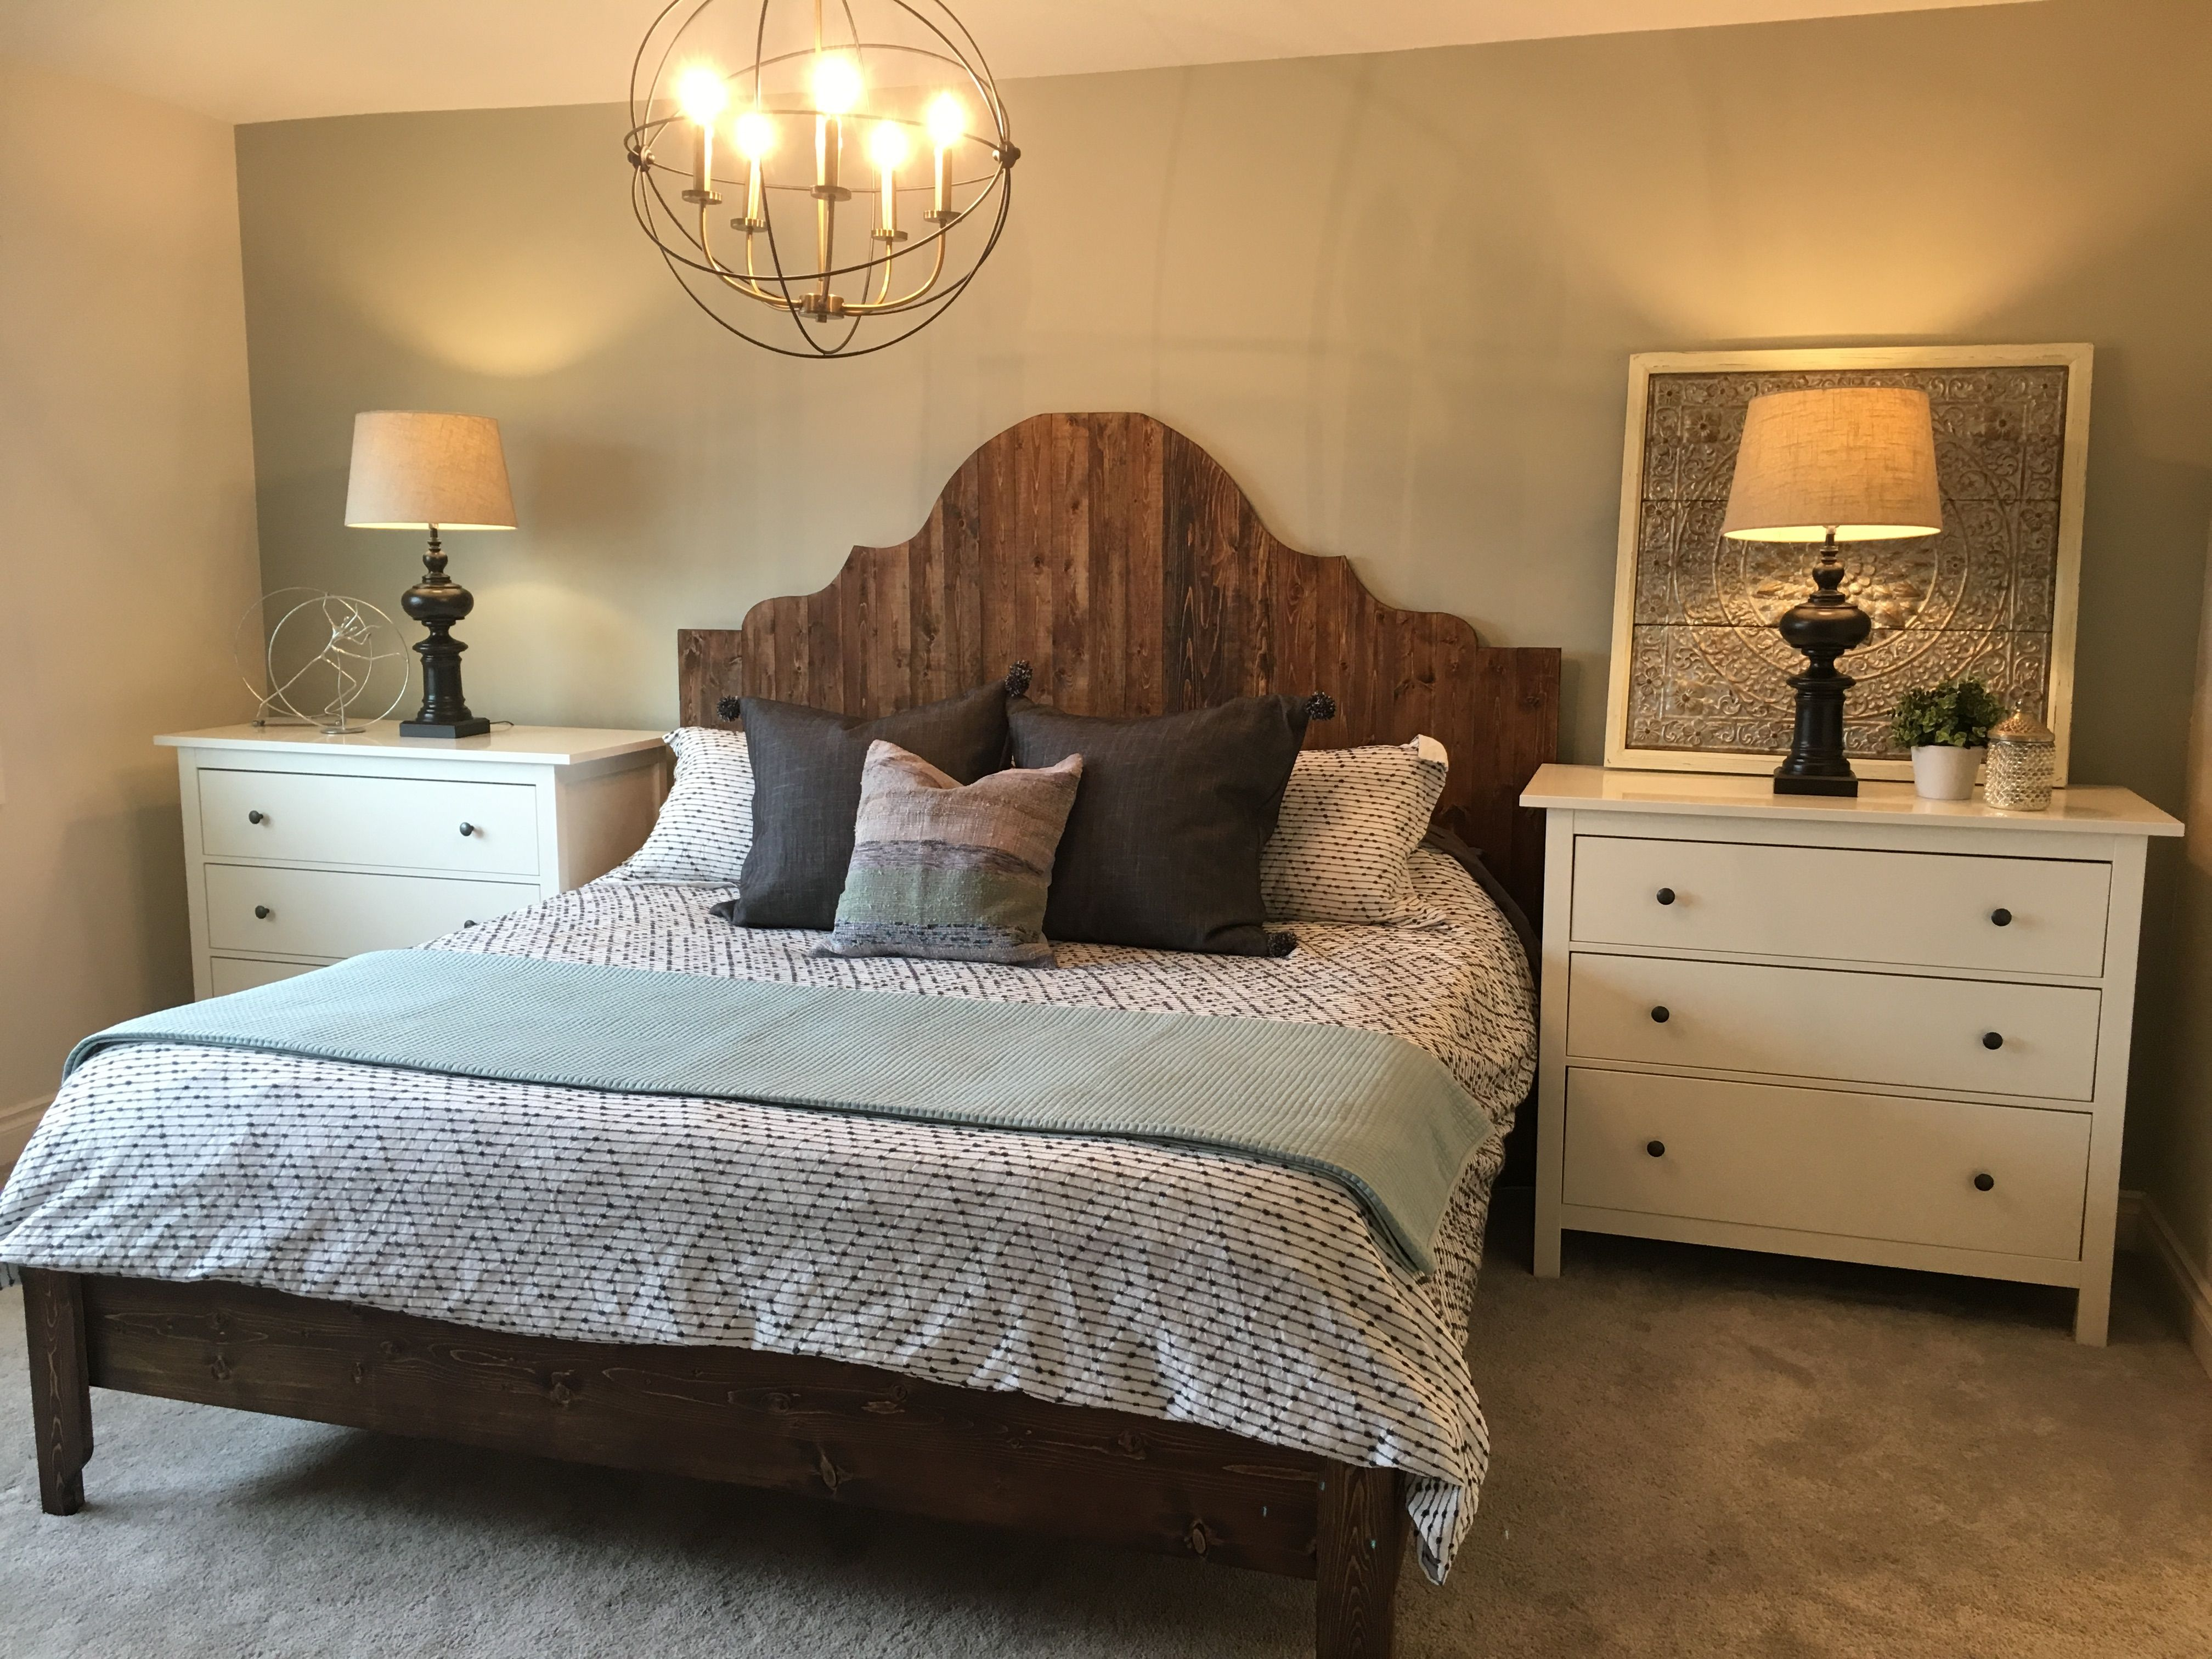 Diy projects for bedroom pinterest ana white  fancy arch king size  diy projects  decorating